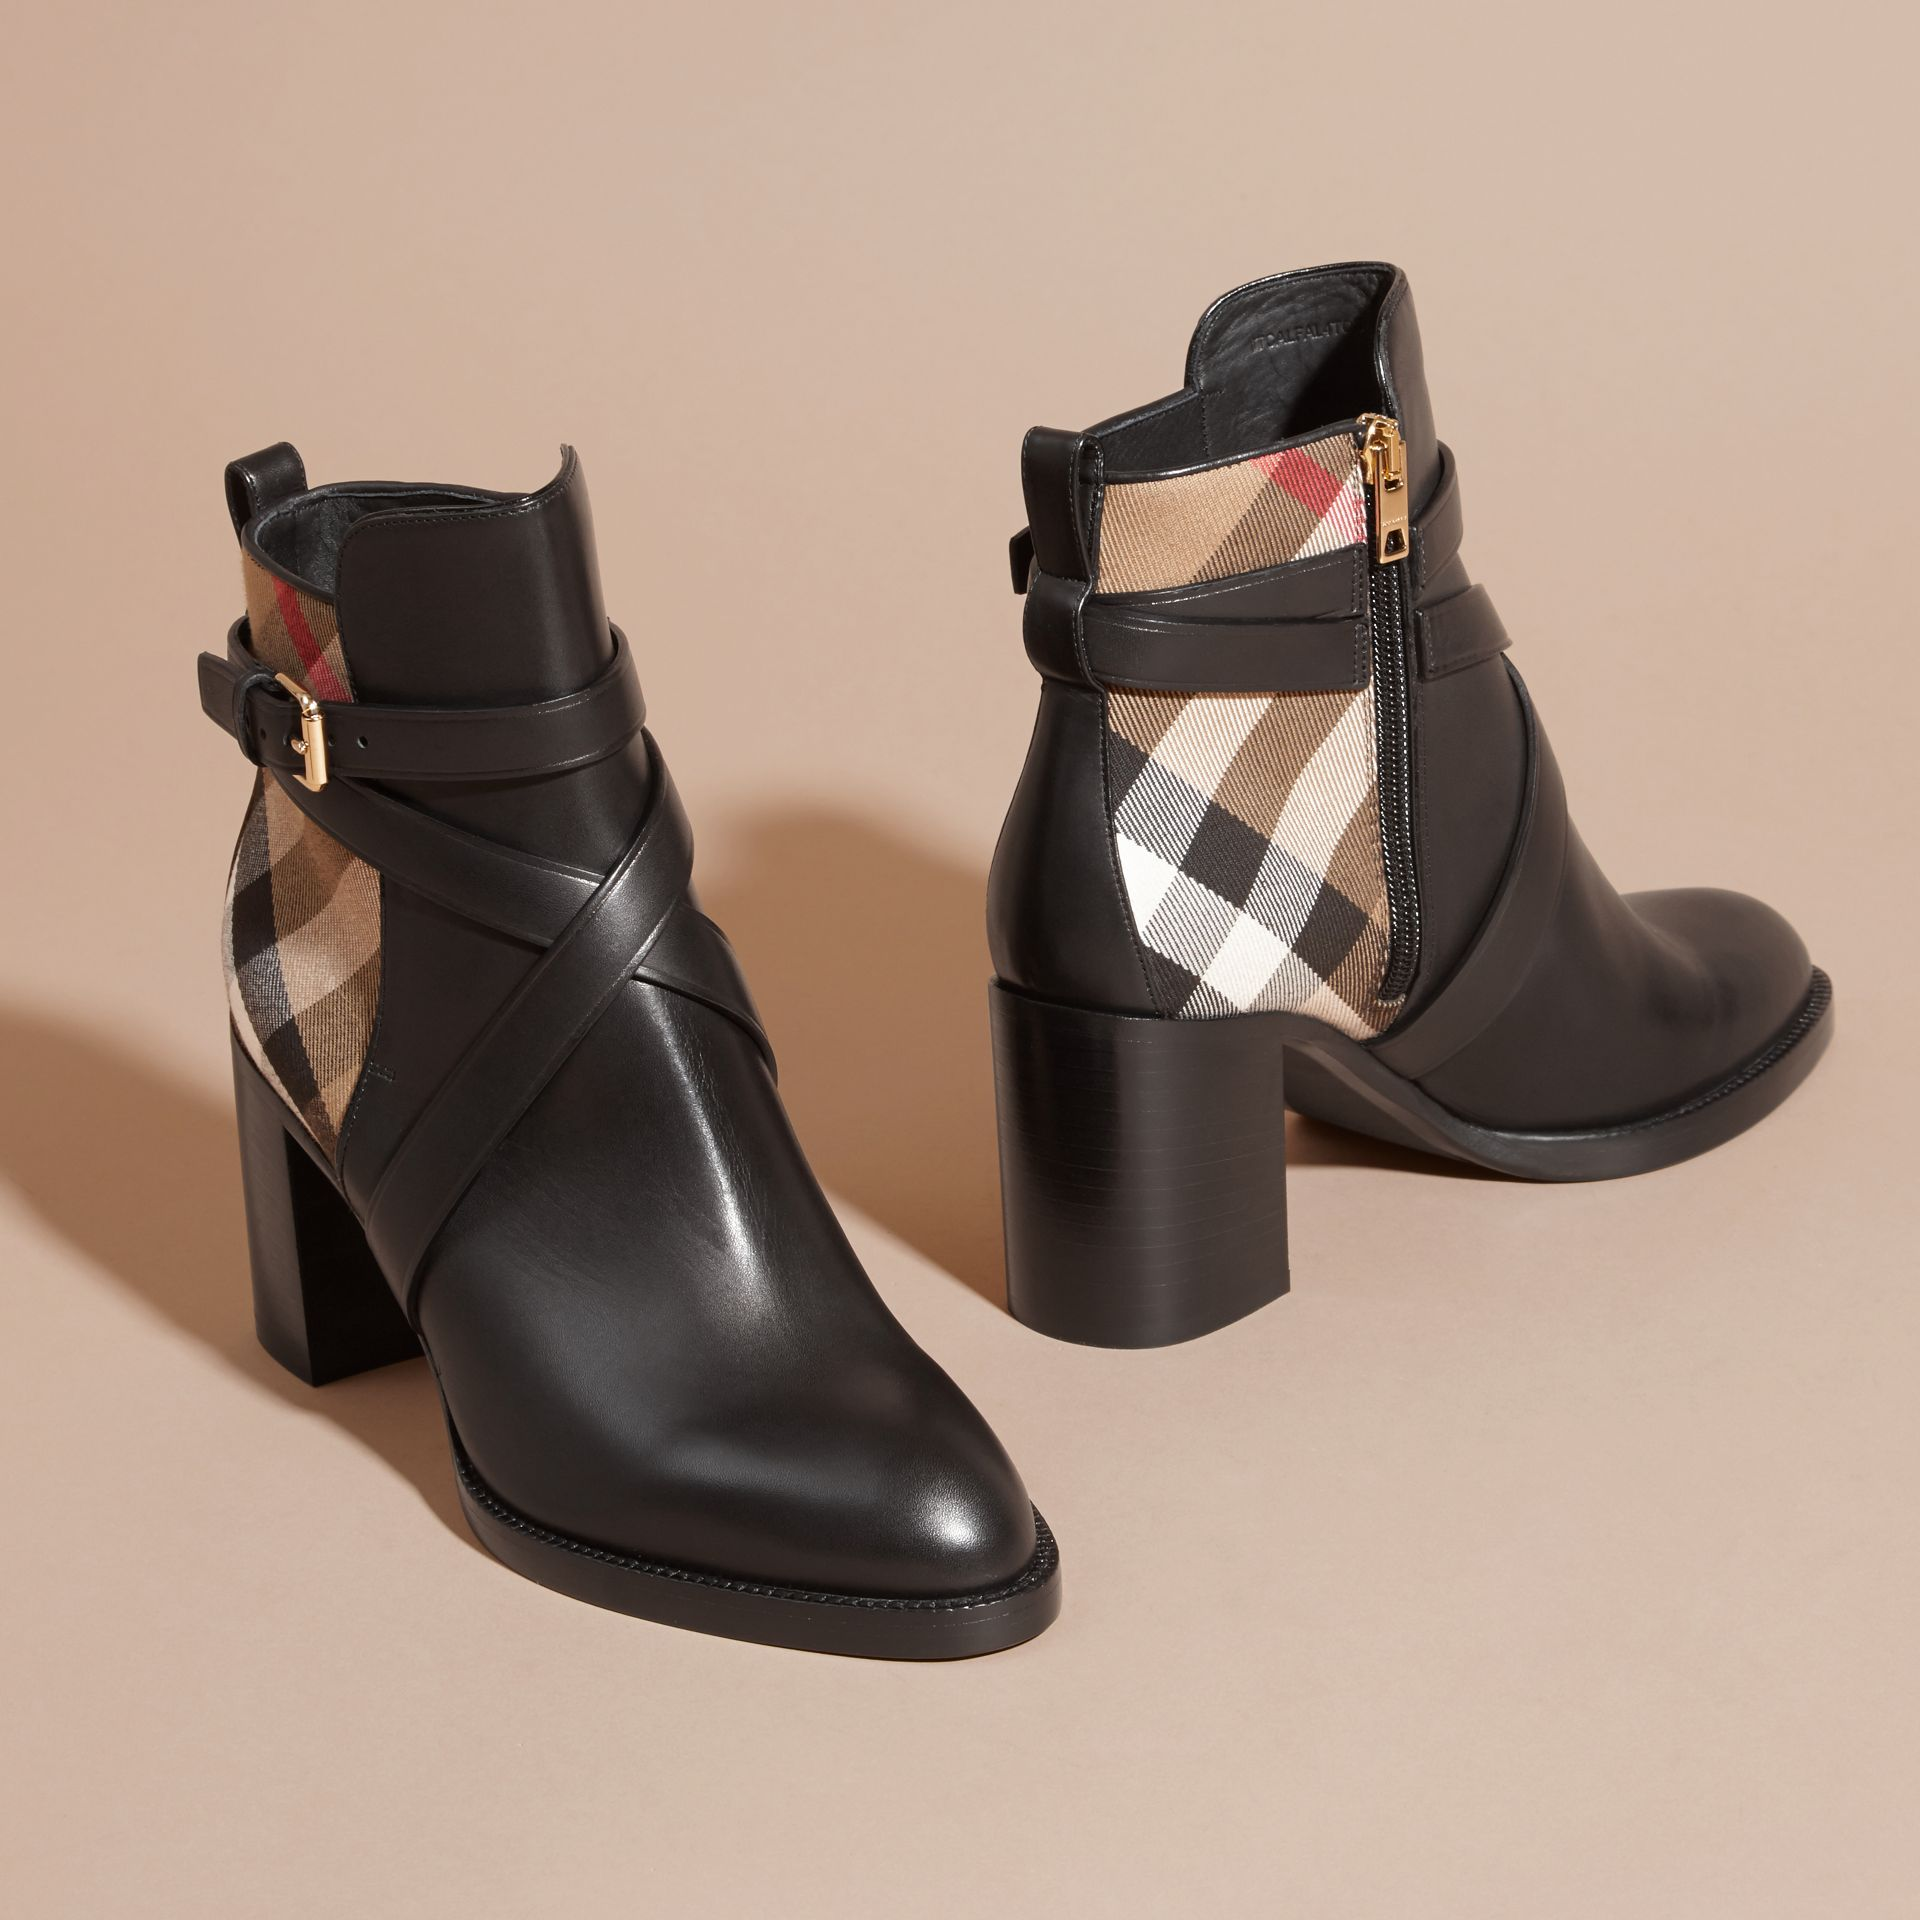 House Check and Leather Ankle Boots in Black - Women | Burberry United Kingdom - gallery image 3